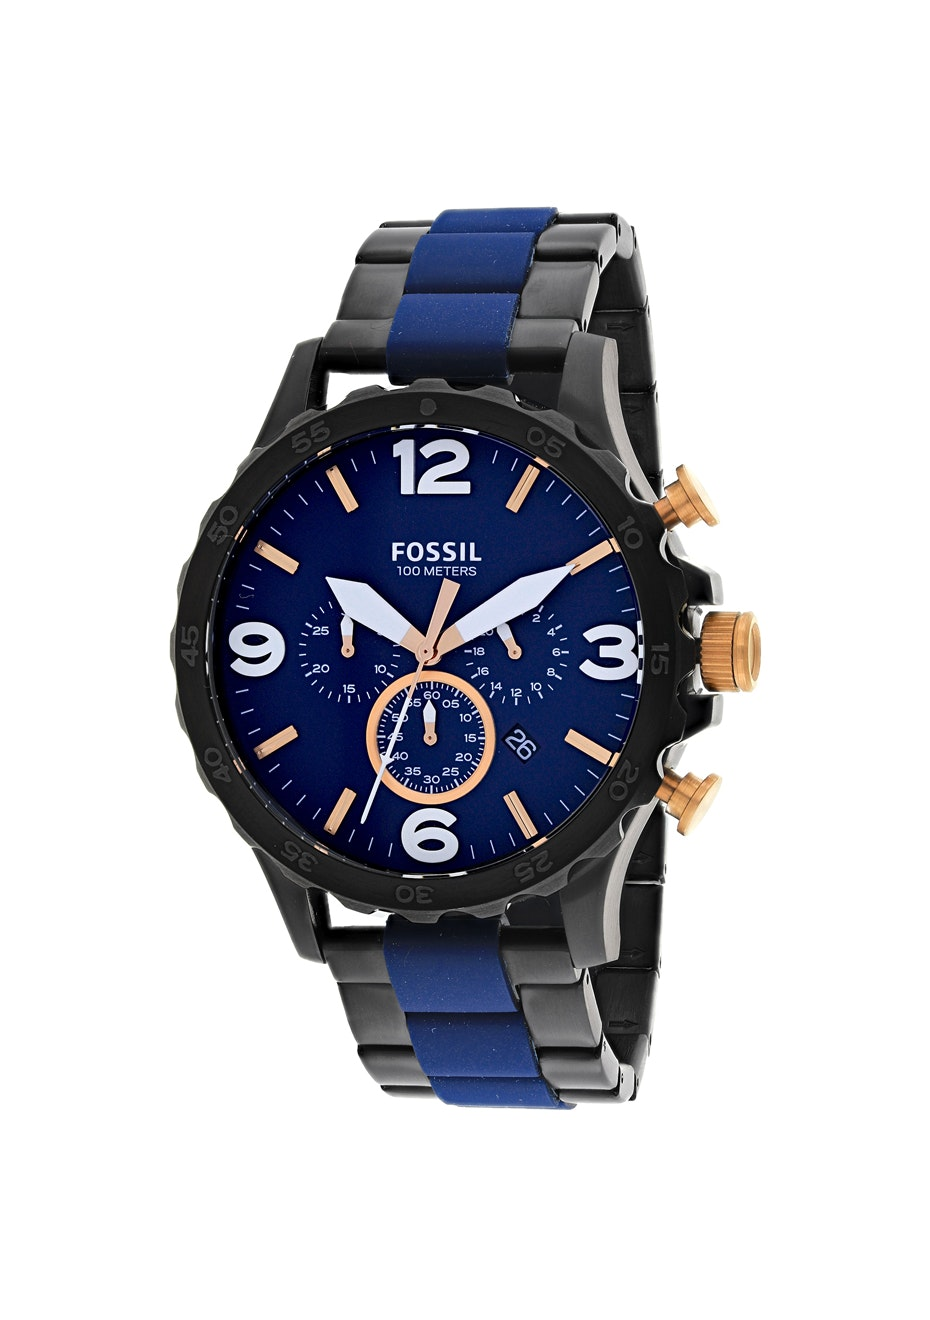 Fossil Men's Nate Chronograph - Blue/Two-tone black/